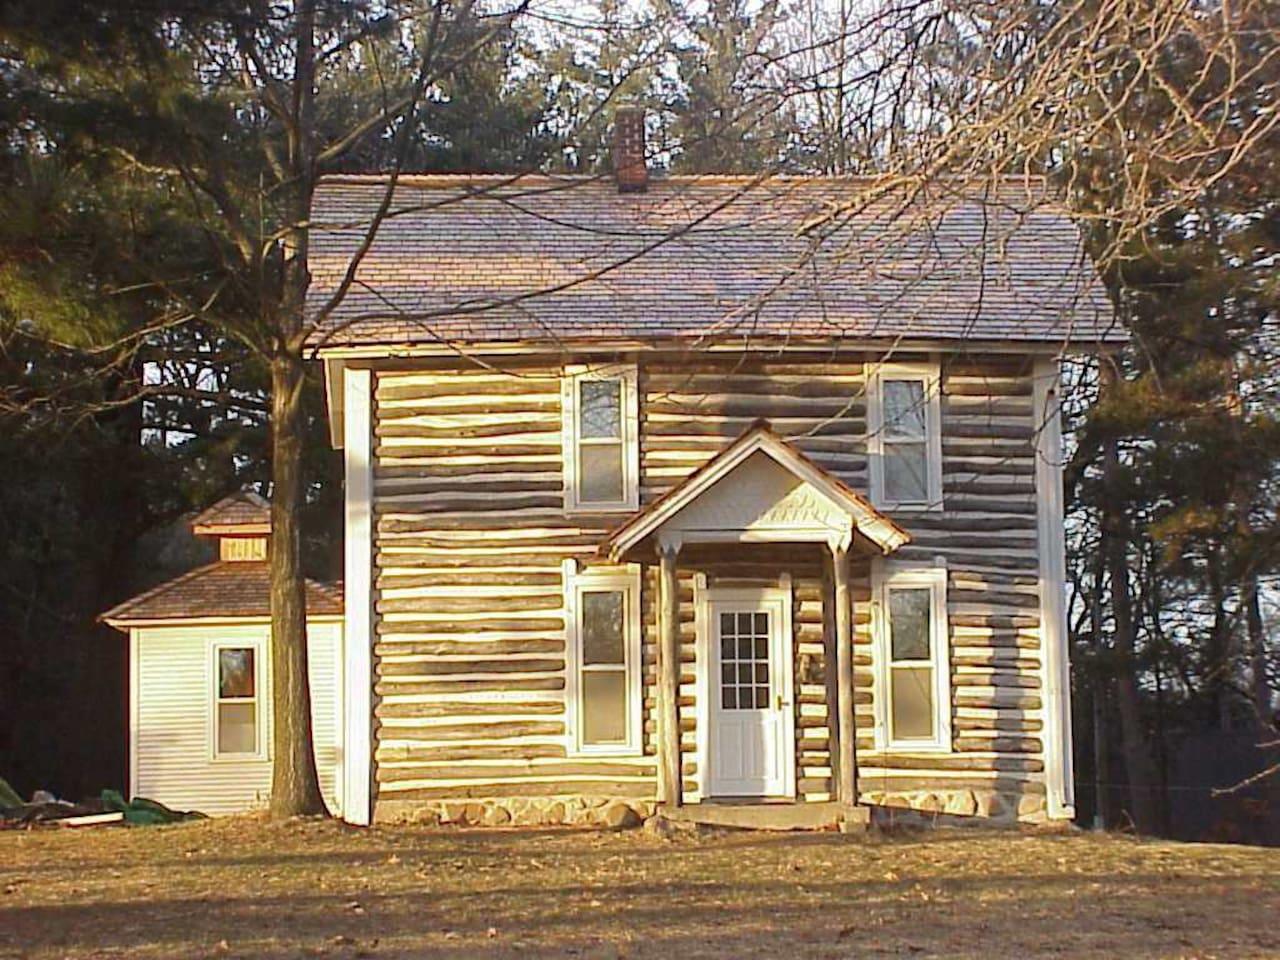 1874 National Historic Registry 2-Story Log House facing prairie